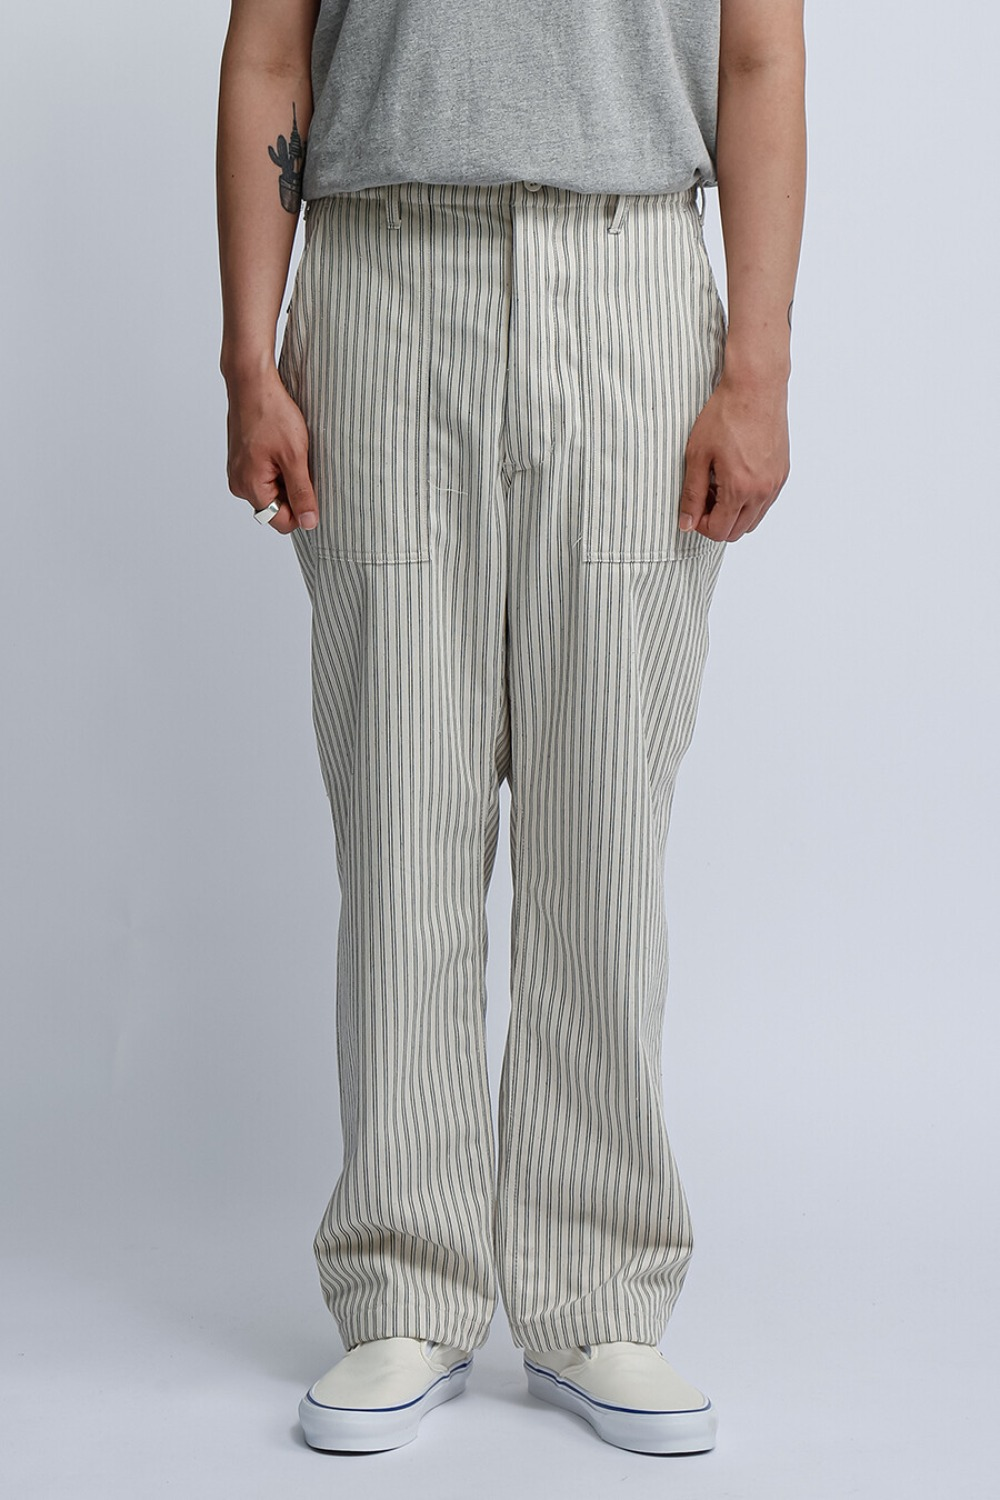 FATIGUE PANT UNIFORM STRIPE NATURAL/NAVY